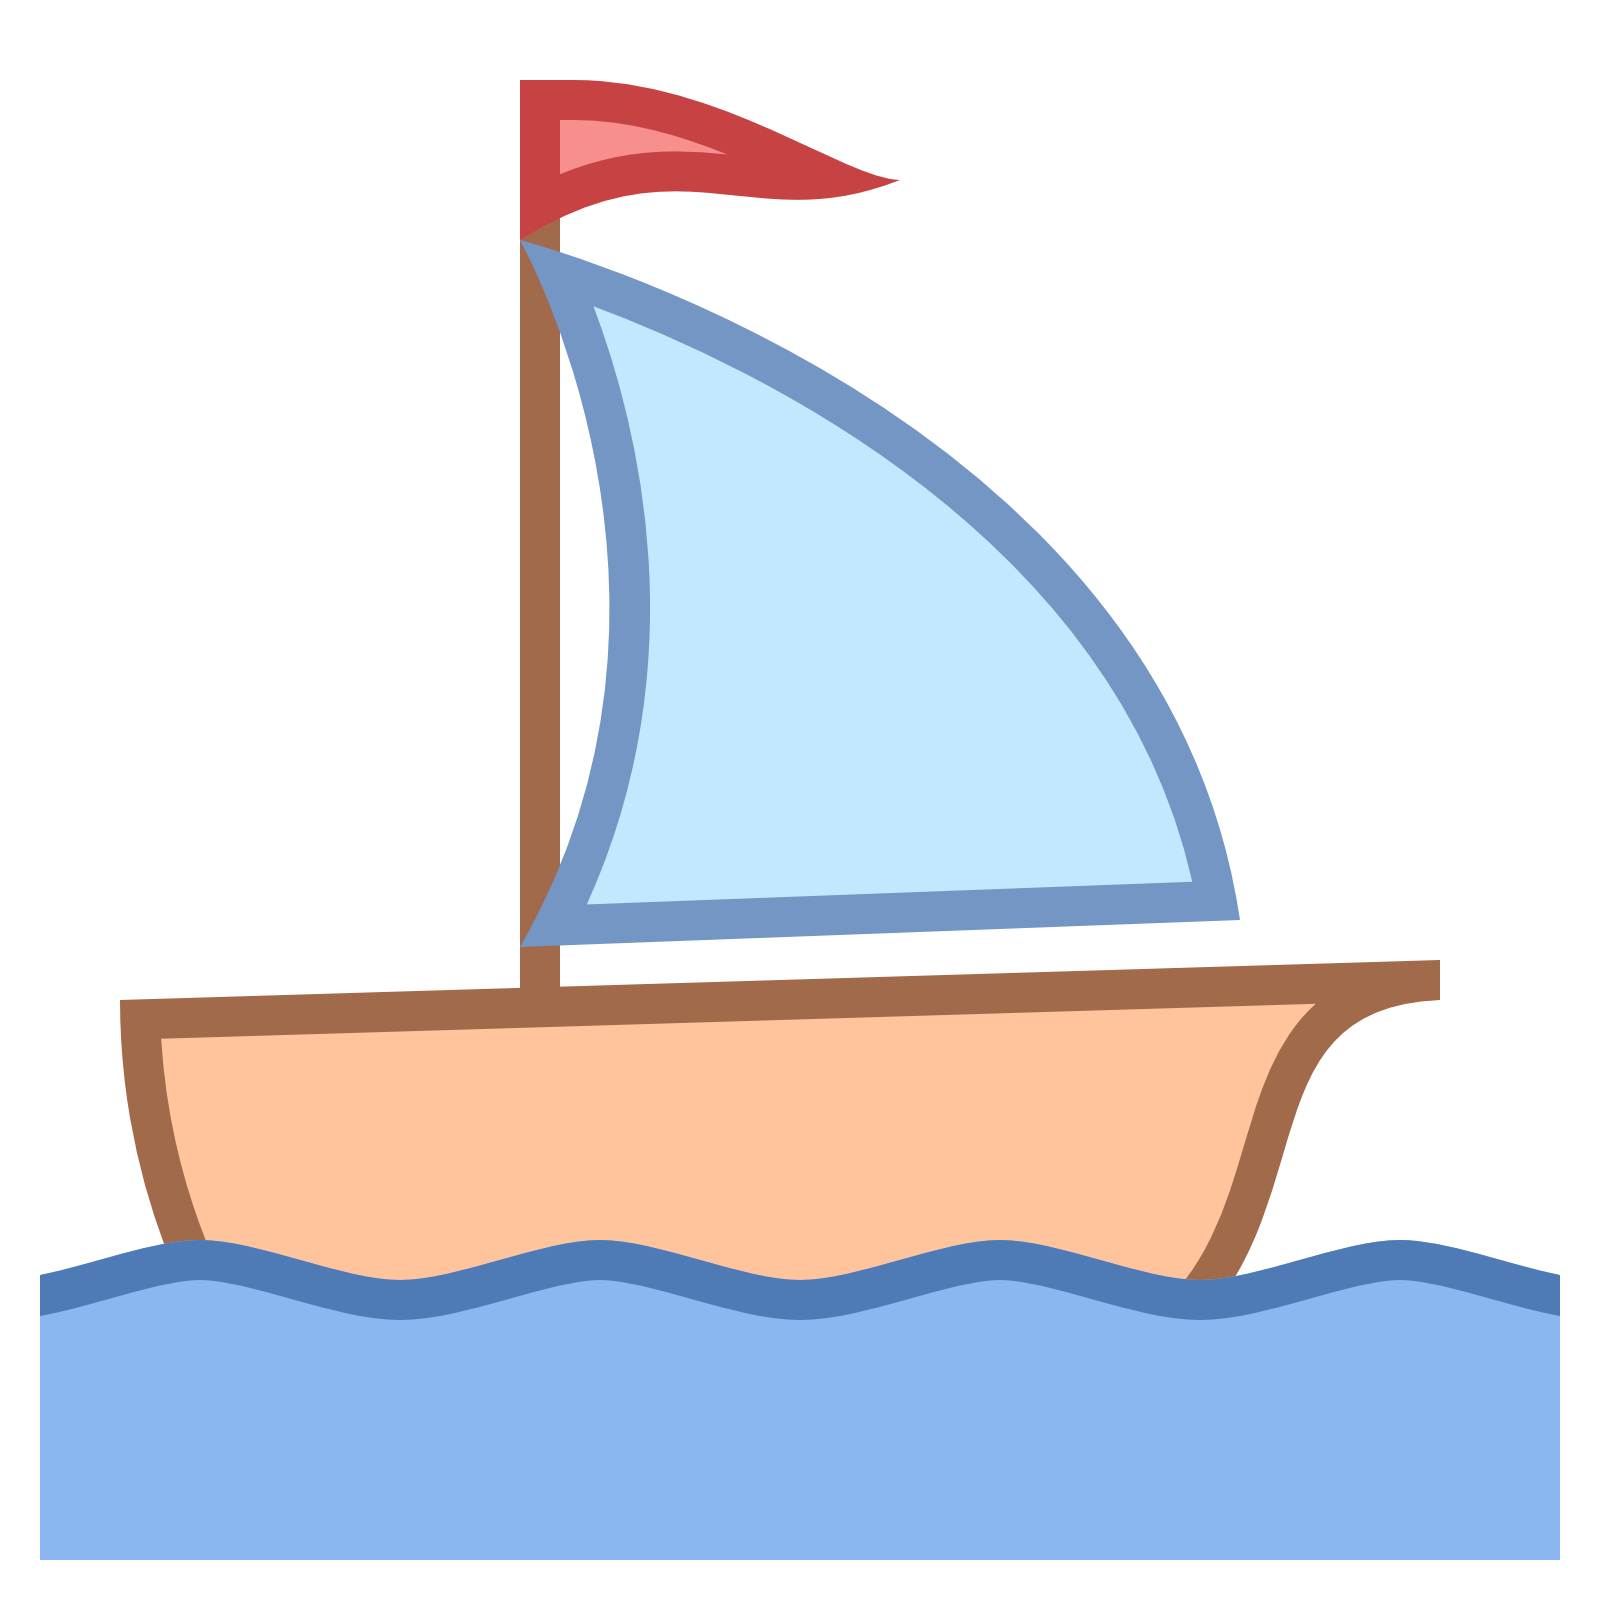 Sailing clipart little boat #13